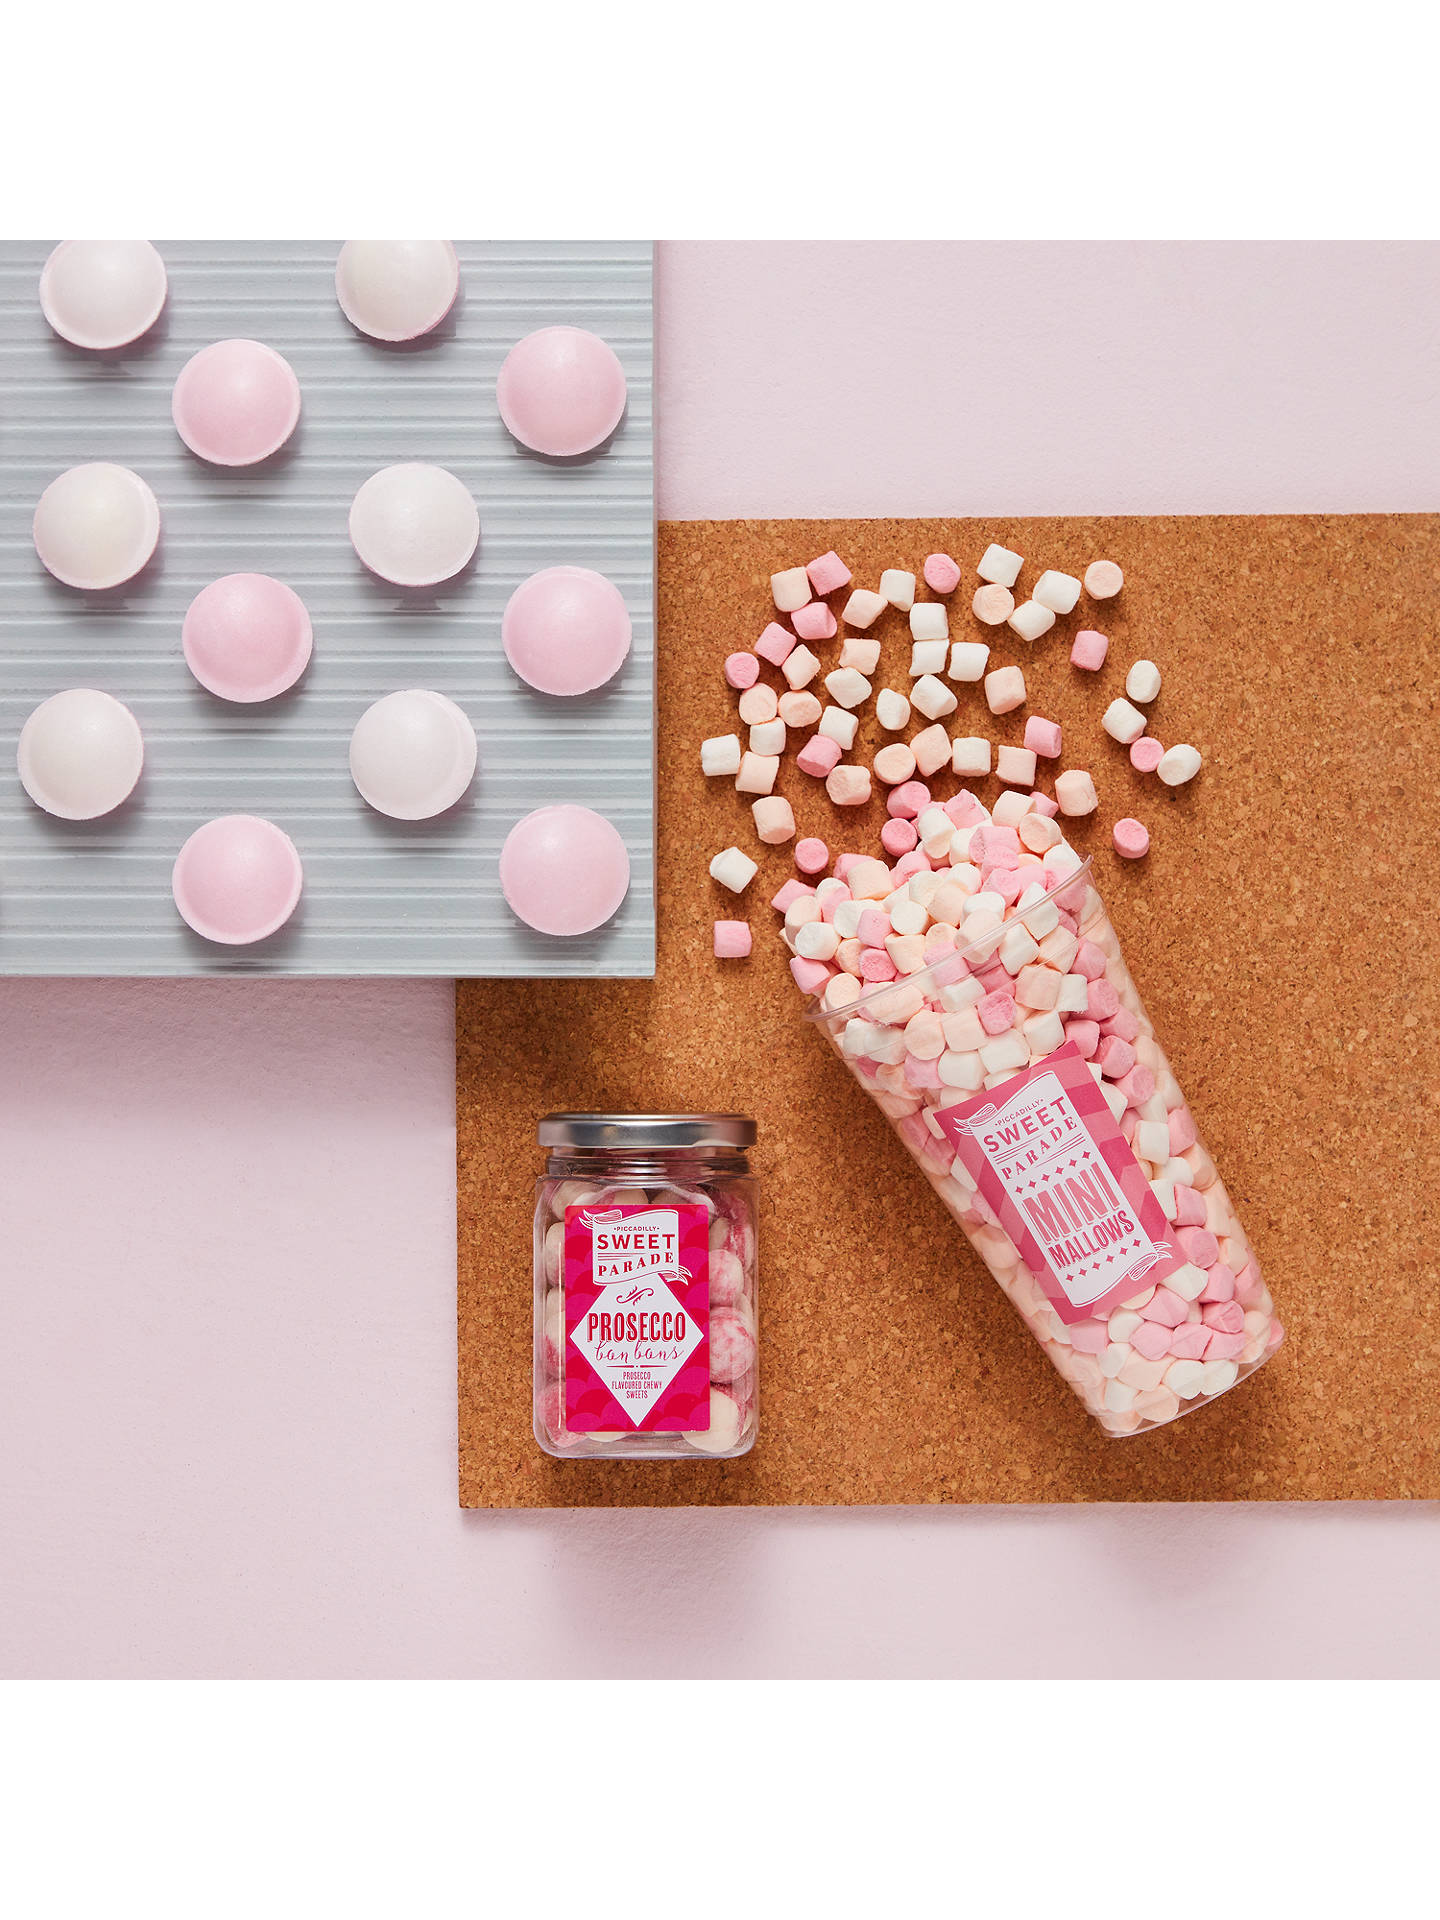 BuyPiccadilly Sweet Parade Prosecco Bon Bons, 200g Online at johnlewis.com